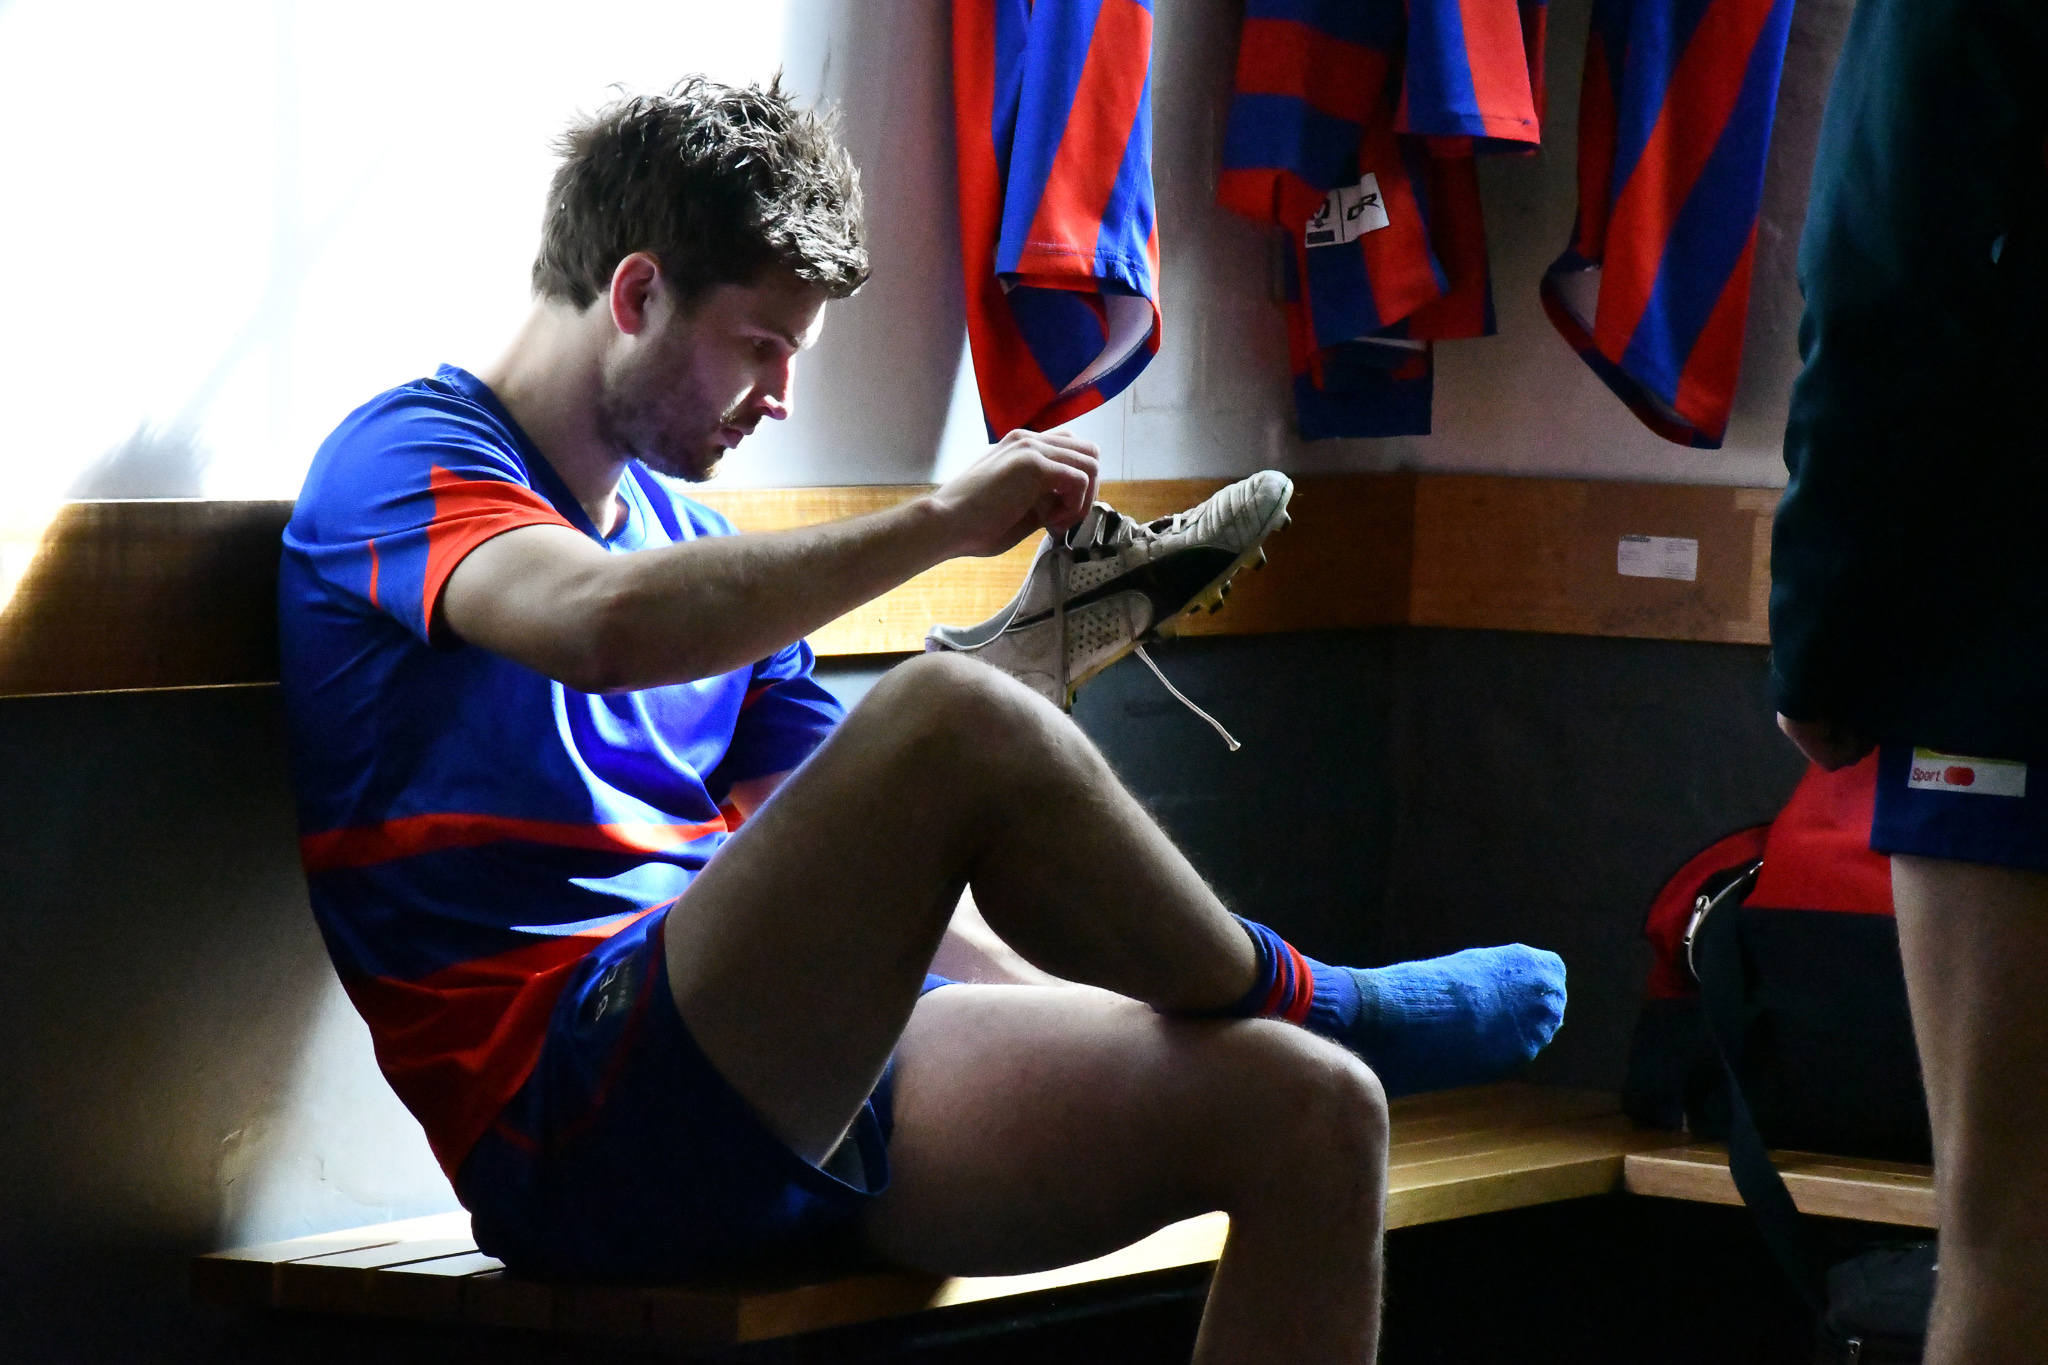 Player Dylan Van Unen slides on his boots in the club change rooms before the game against Collingwood on 11th August 2018.